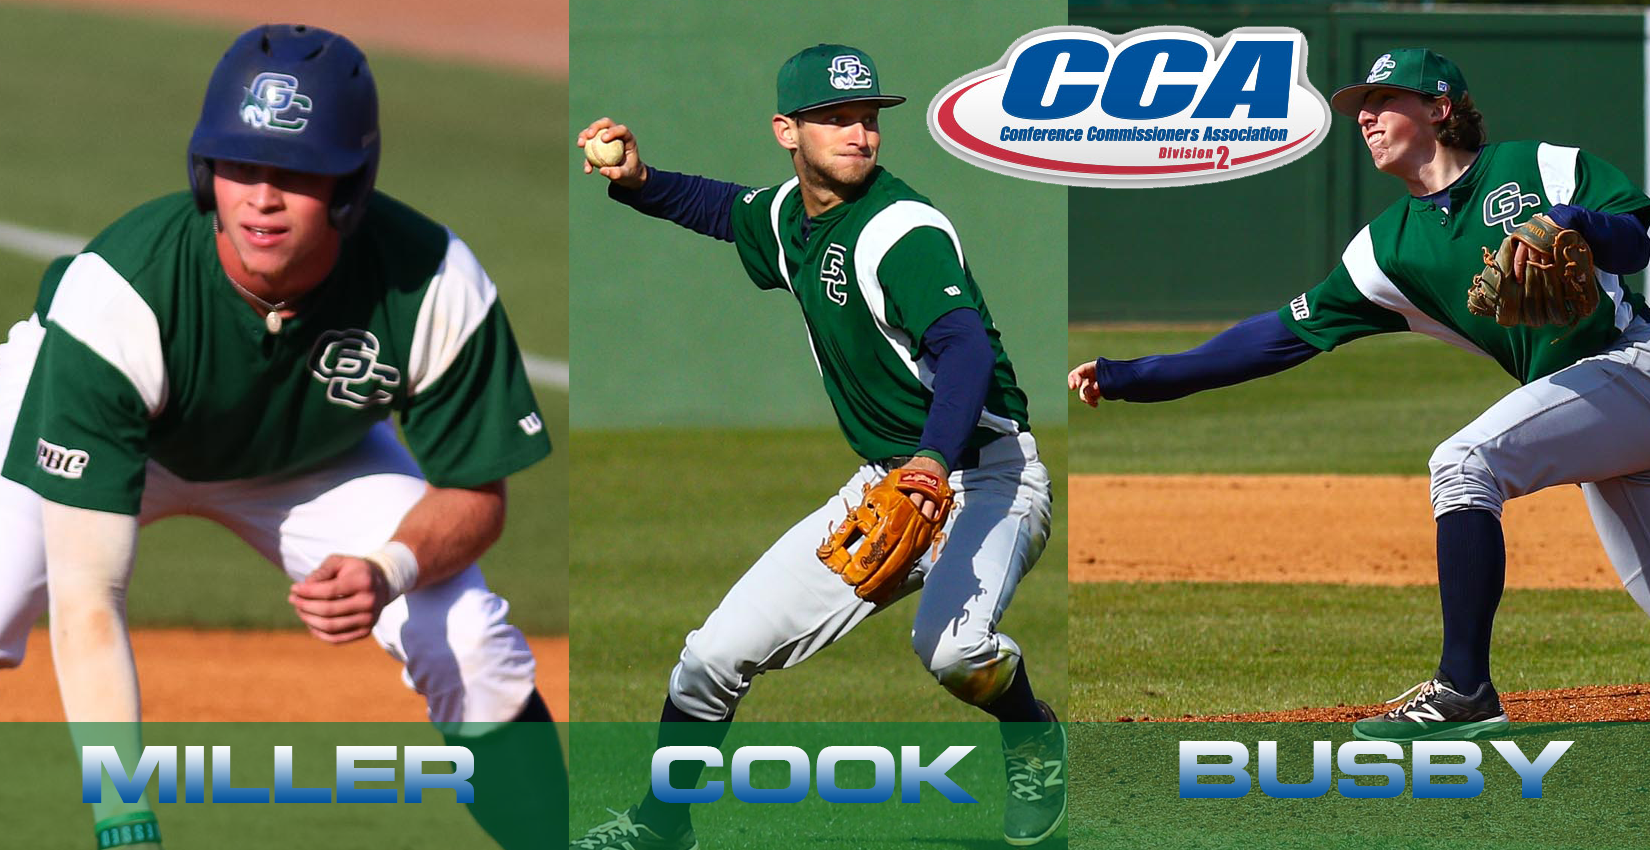 D2CCA Names Cook Region Player of the Year, Again Leads Bobcat Three on All-Region Team